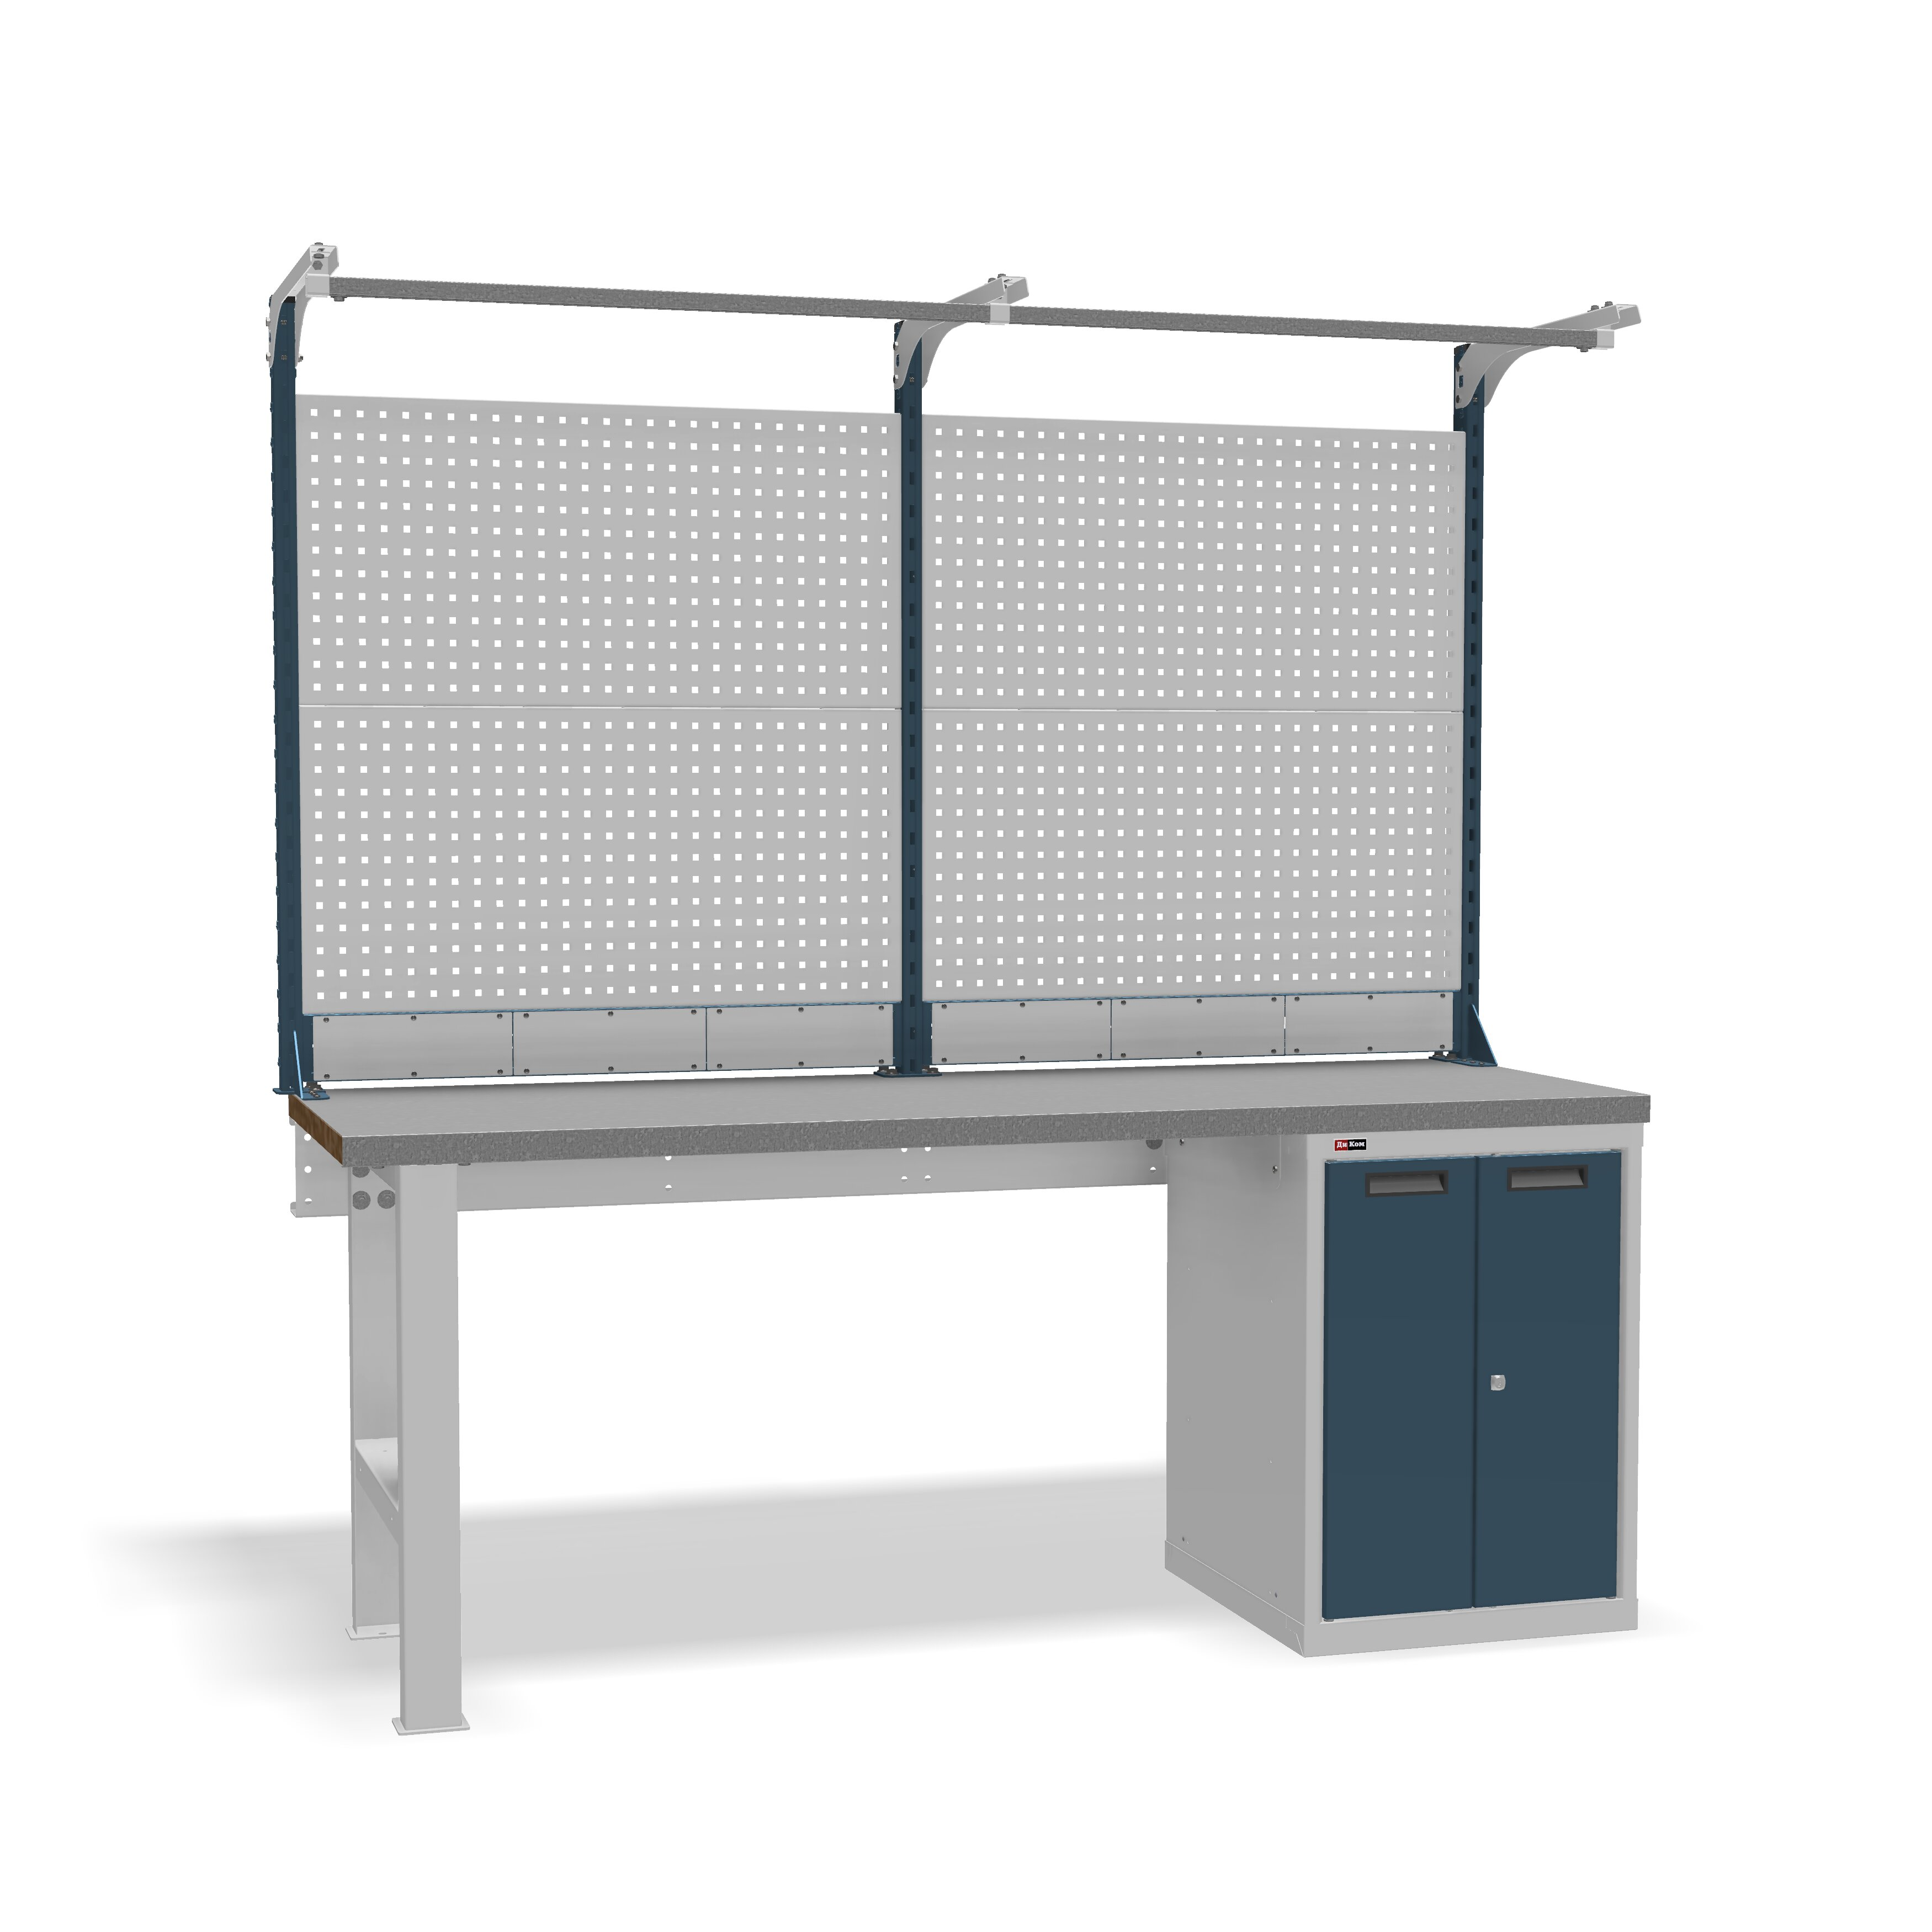 DiKom VS-200-03 Workbench + DiKom Perforated Panel VS-200-E3